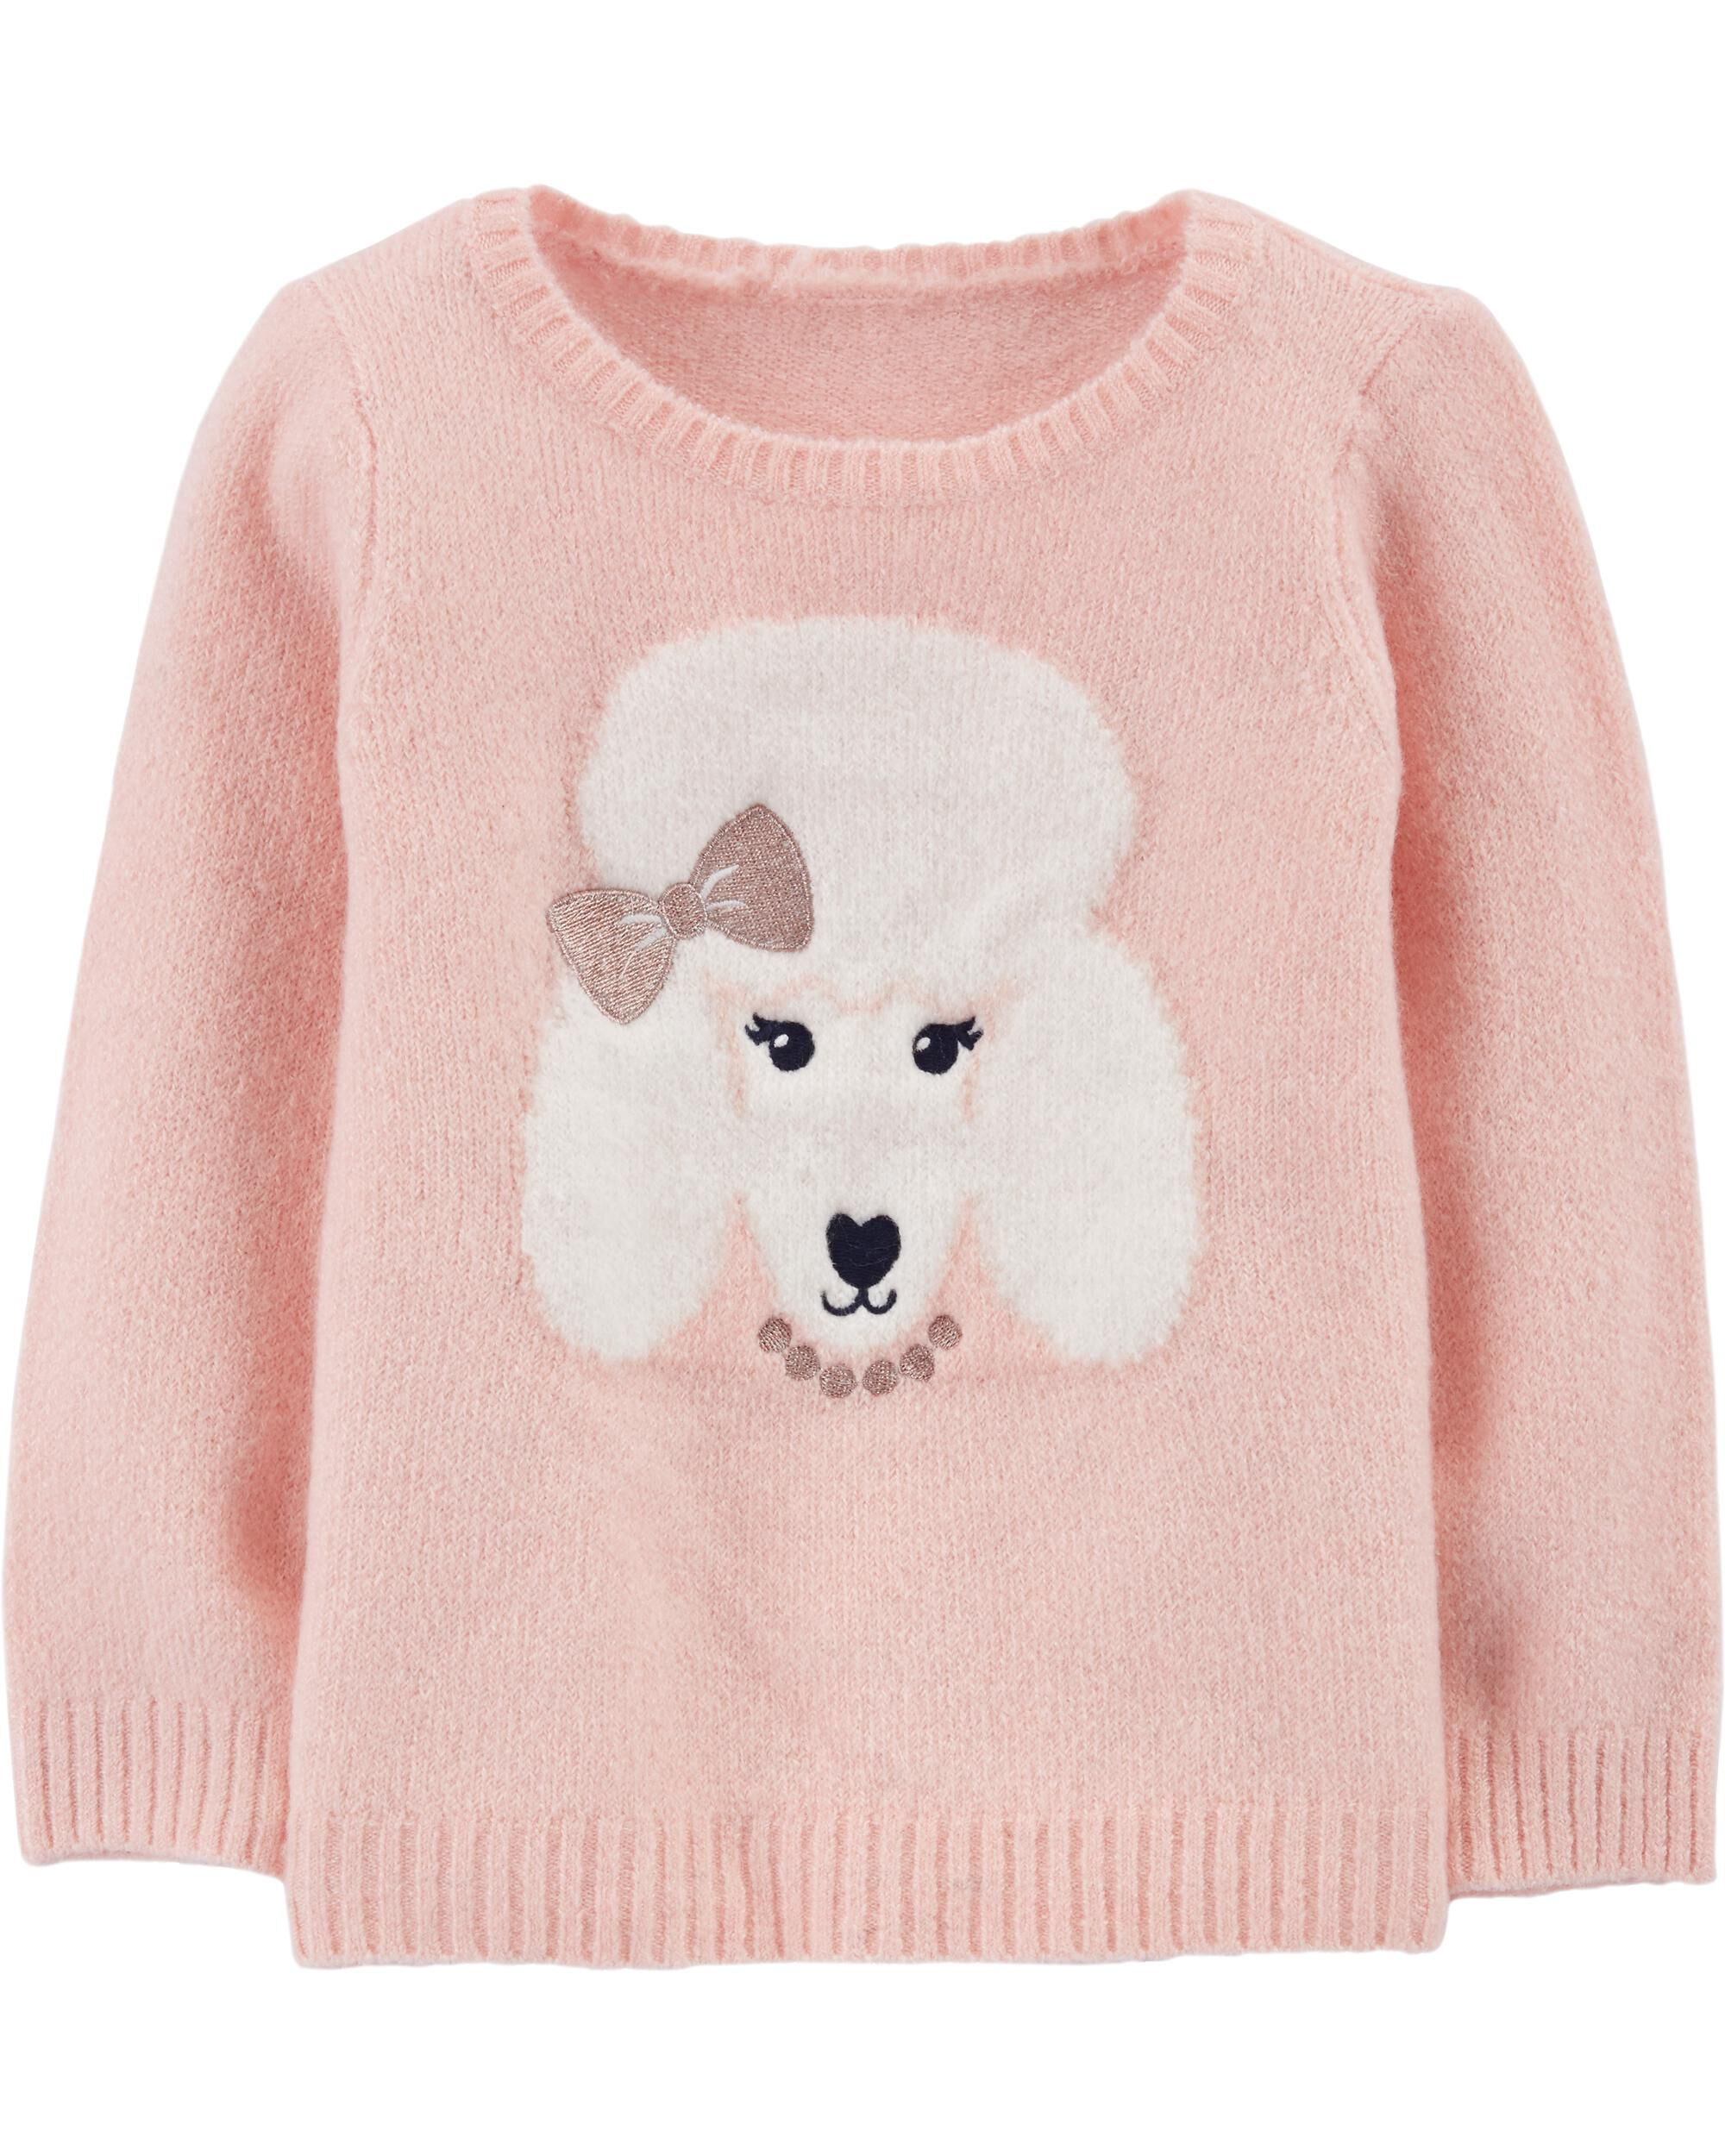 455d7b9bb Poodle Sweater